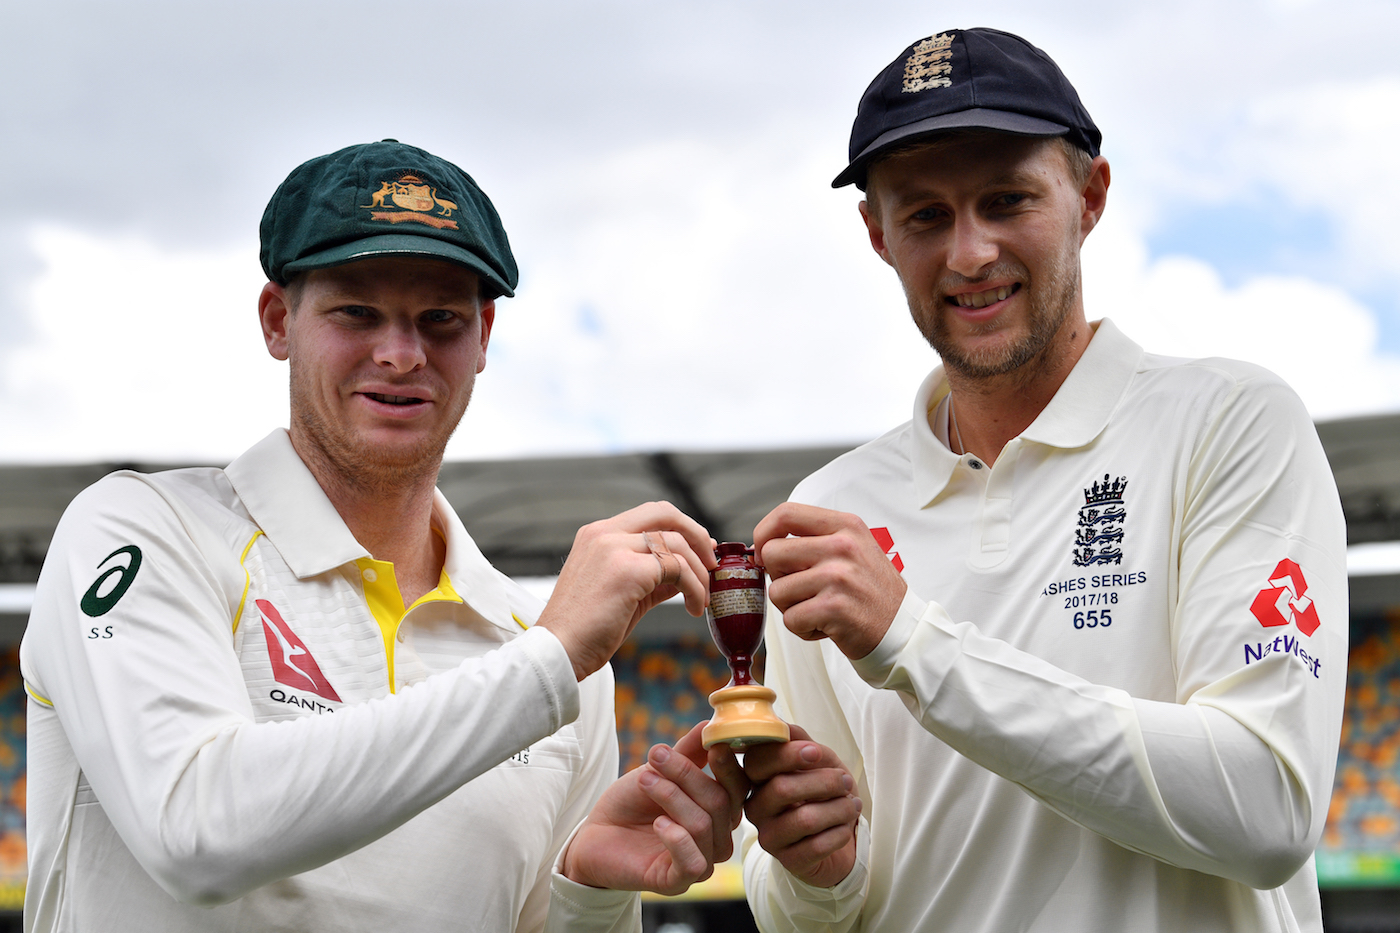 Ashes 2017/18: I Wish Root Didn't Have the Captaincy Burden - Graeme Swann 2